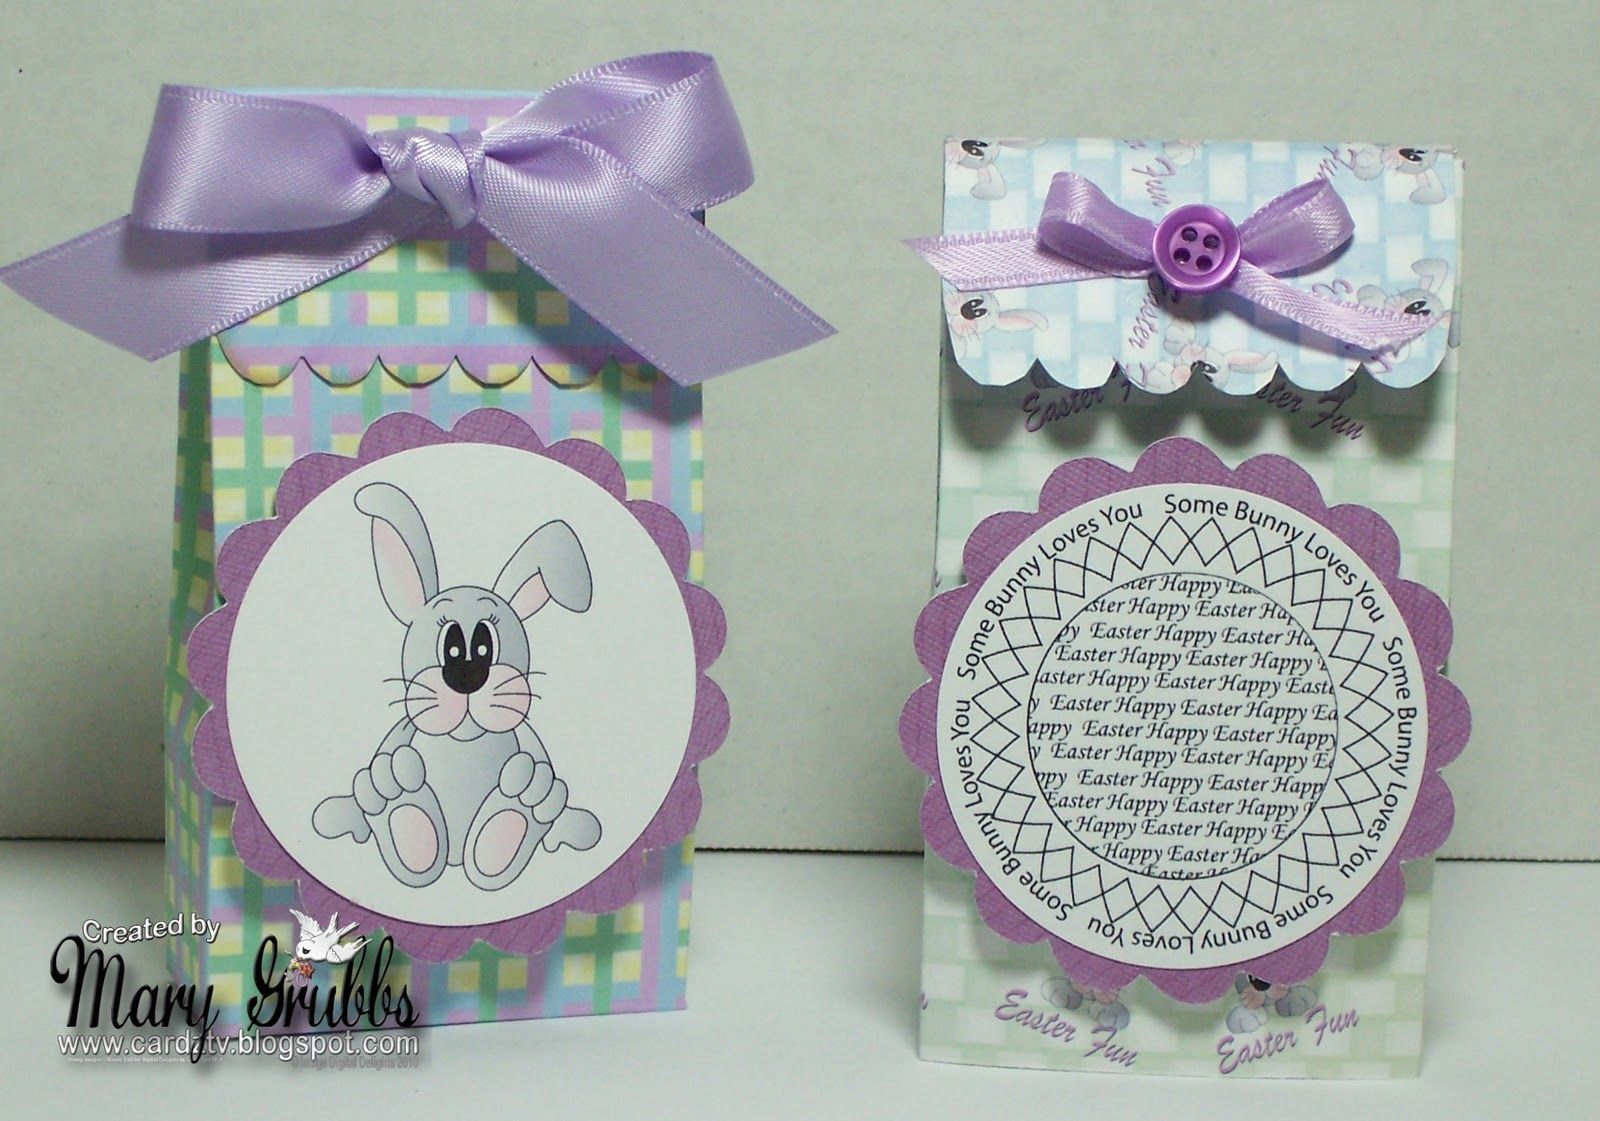 Cardz tv digital delights sunday tutorial easter gift bags gift welcome to another sunday tutorial for digital delights today ill be showing you 2 cute easter gift bags negle Images